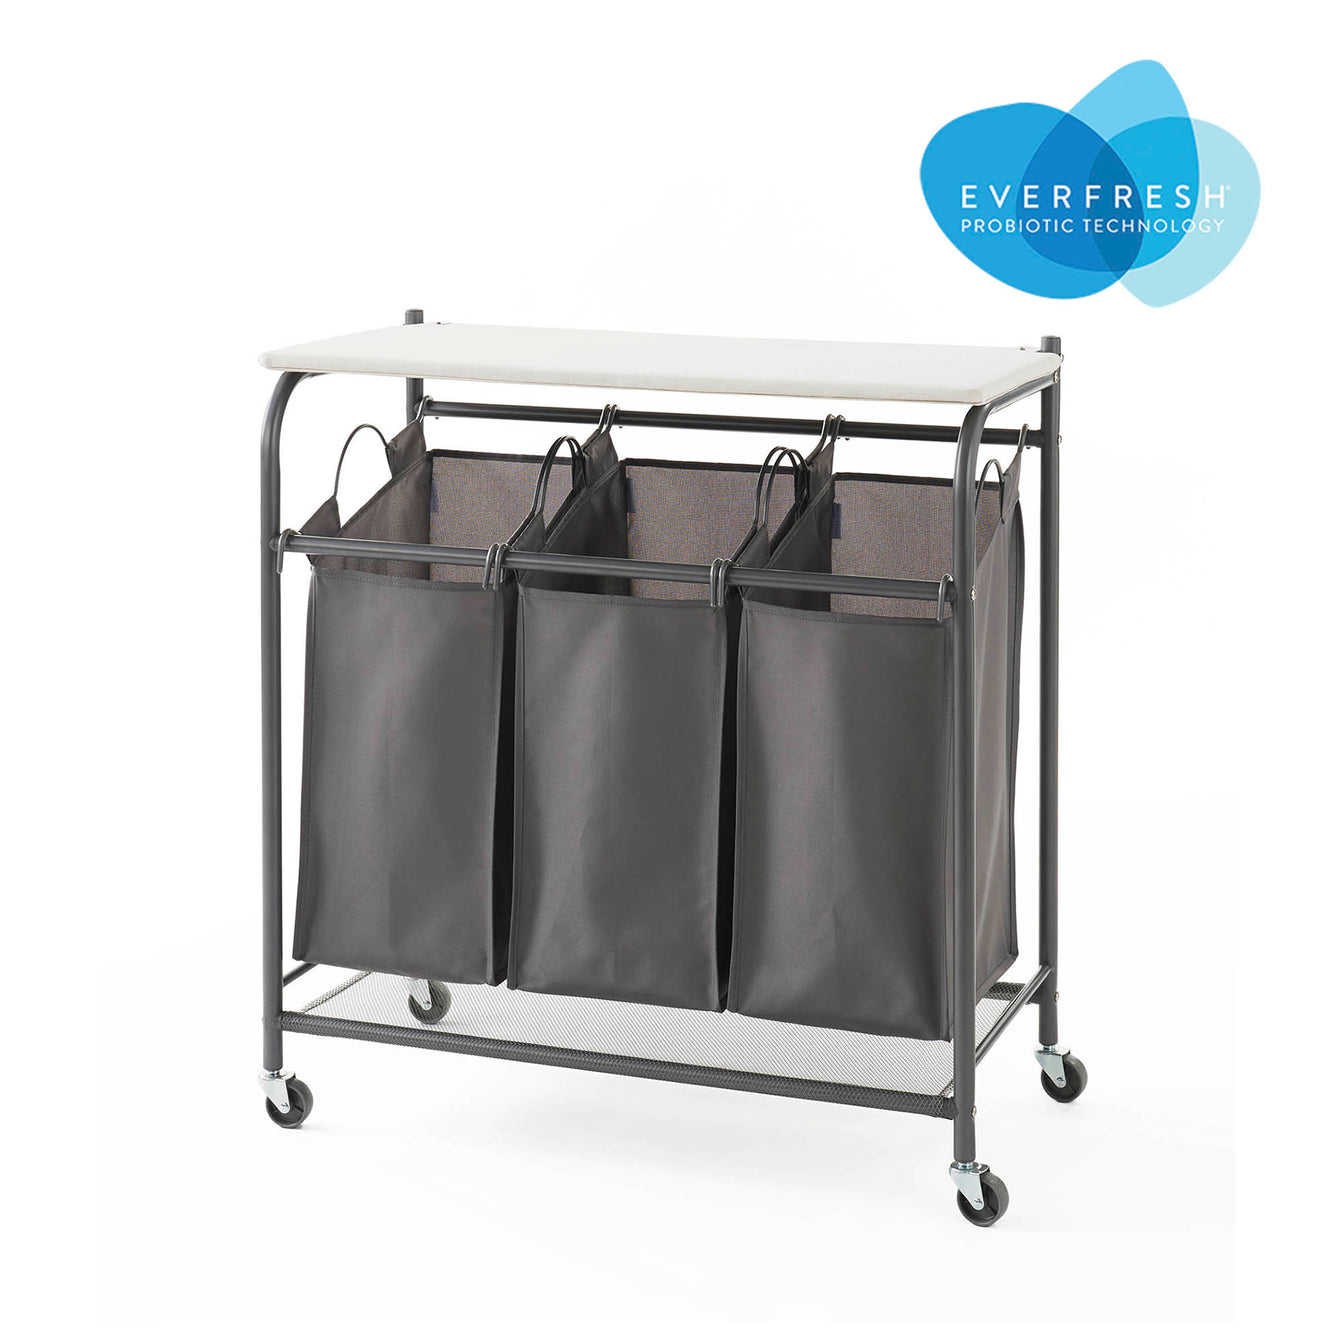 Rolling Triple Laundry Sorter with Ironing Board Top and EVERFRESH® Odor Control - Charcoal Grey - Style 5479